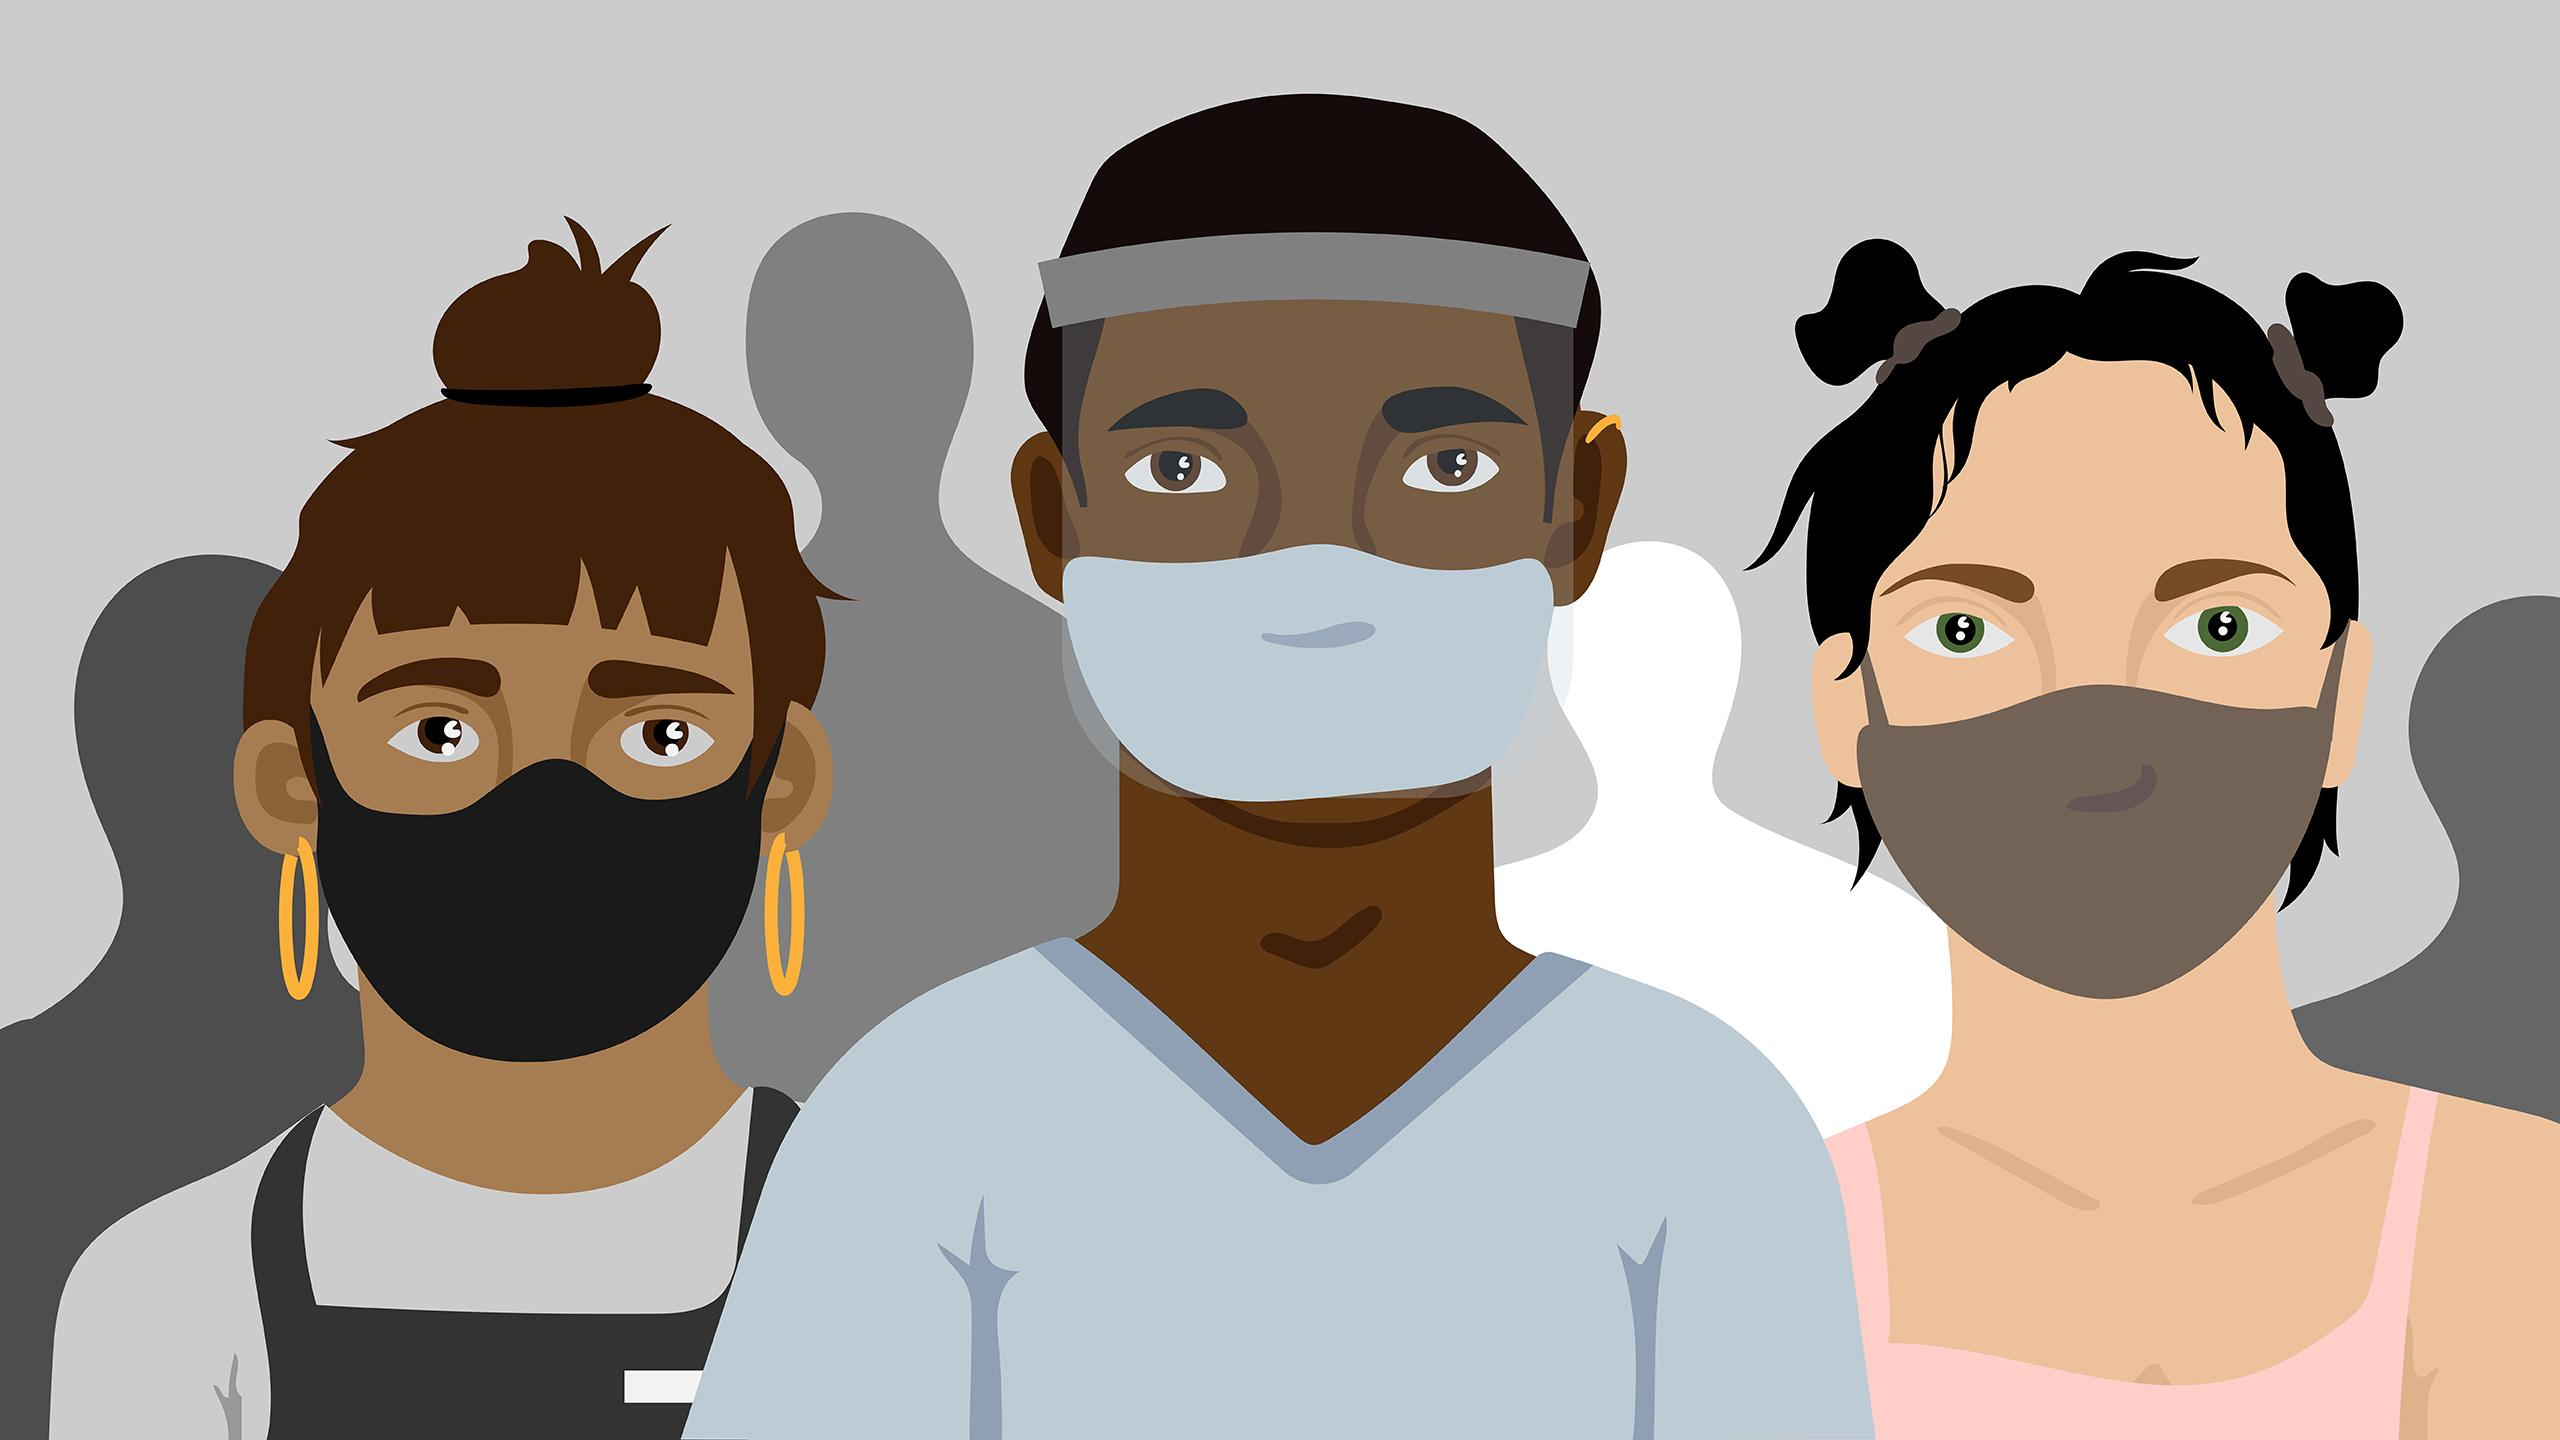 Illustration of three essential workers wearing masks and looking somber with silhouettes of people in the background.